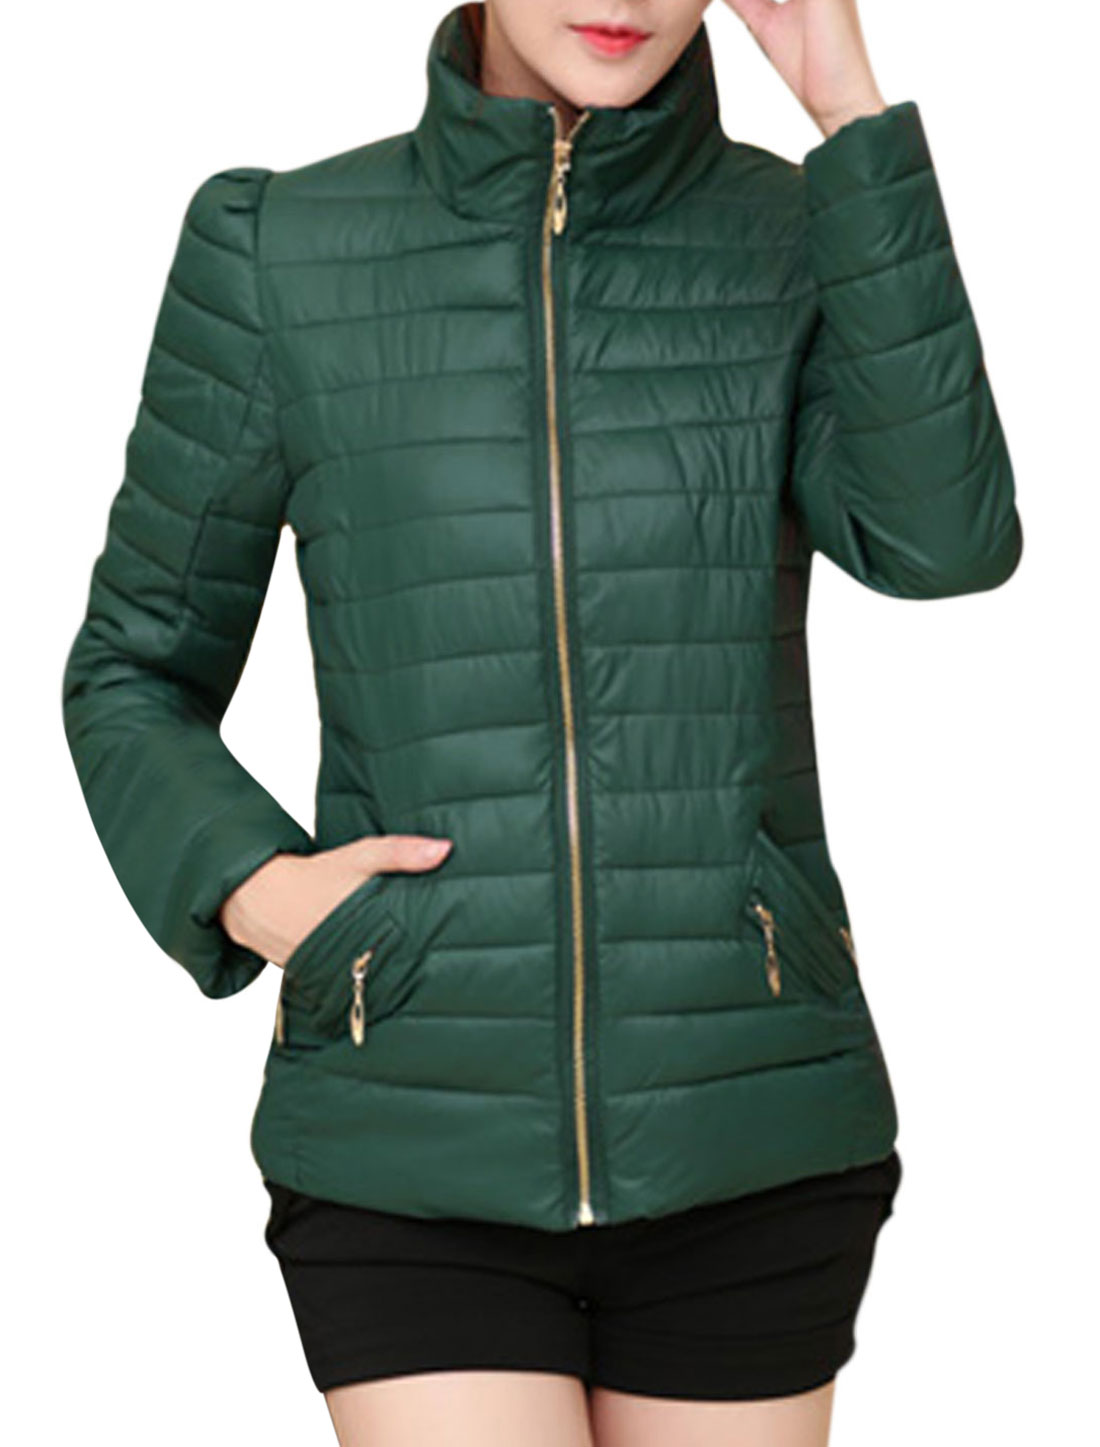 Lady Stand Collar Zip Up Design Cozy Fit Padded Coat Dusty Green M